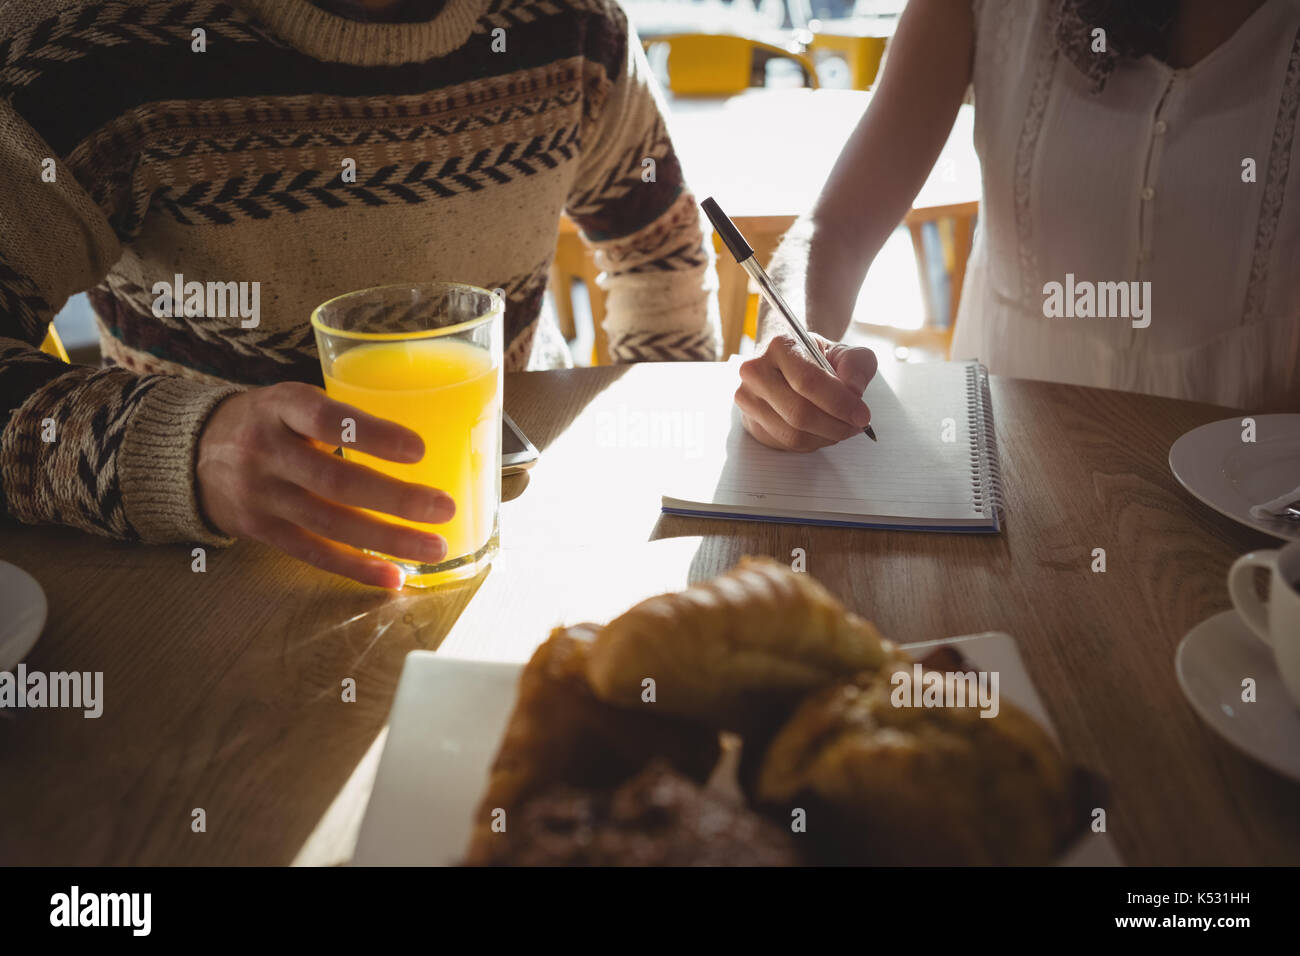 Mid section of woman with man writing on book while sitting at table in cafe - Stock Image